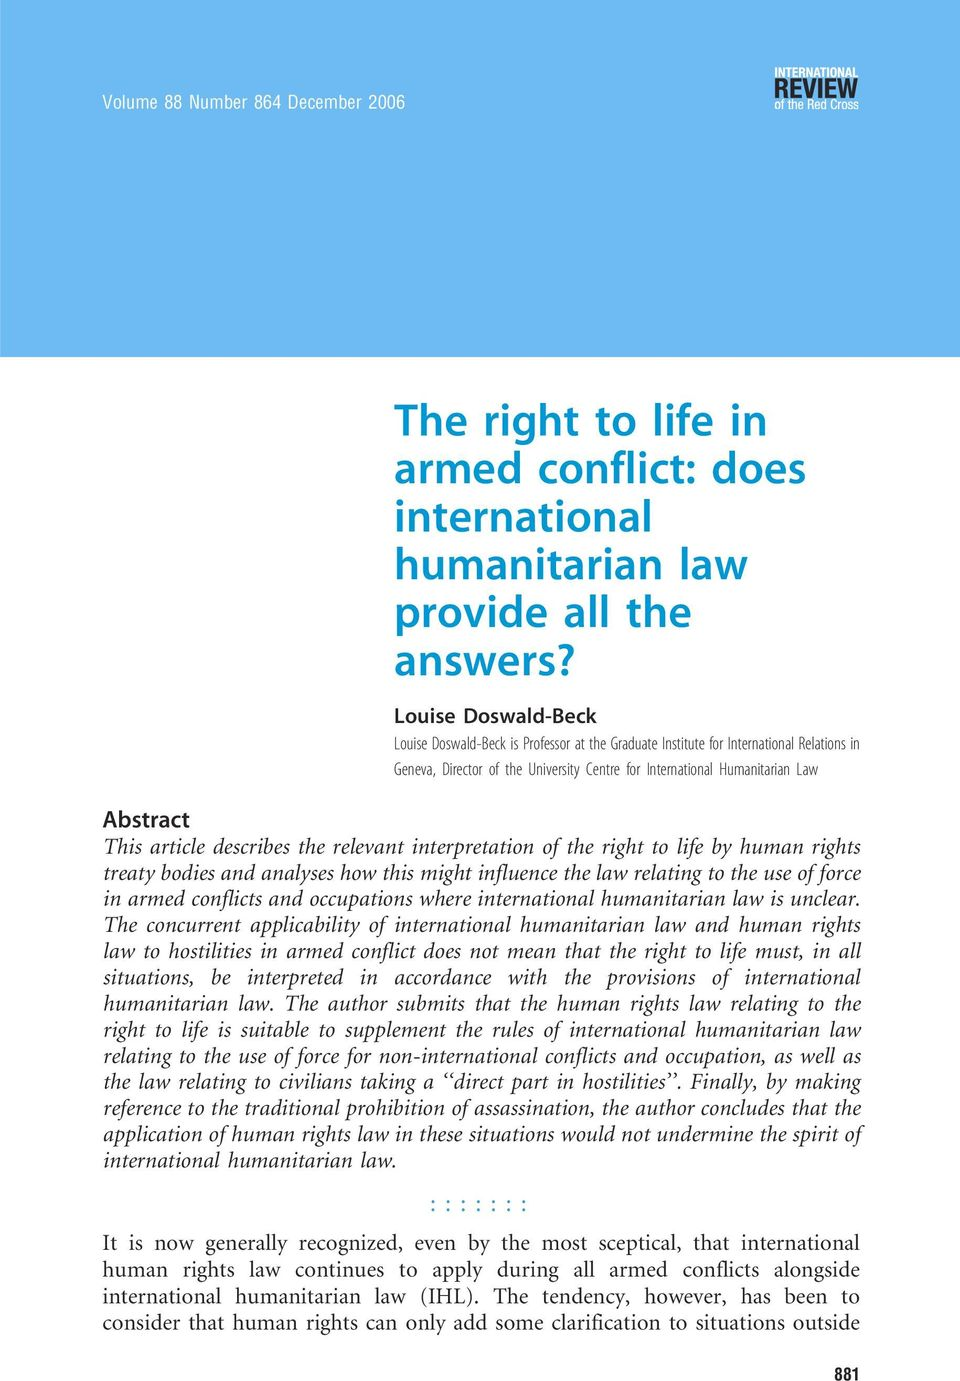 by human rights treaty bodies and analyses how this might influence the law relating to the use of force in armed conflicts and occupations where international humanitarian law is unclear.